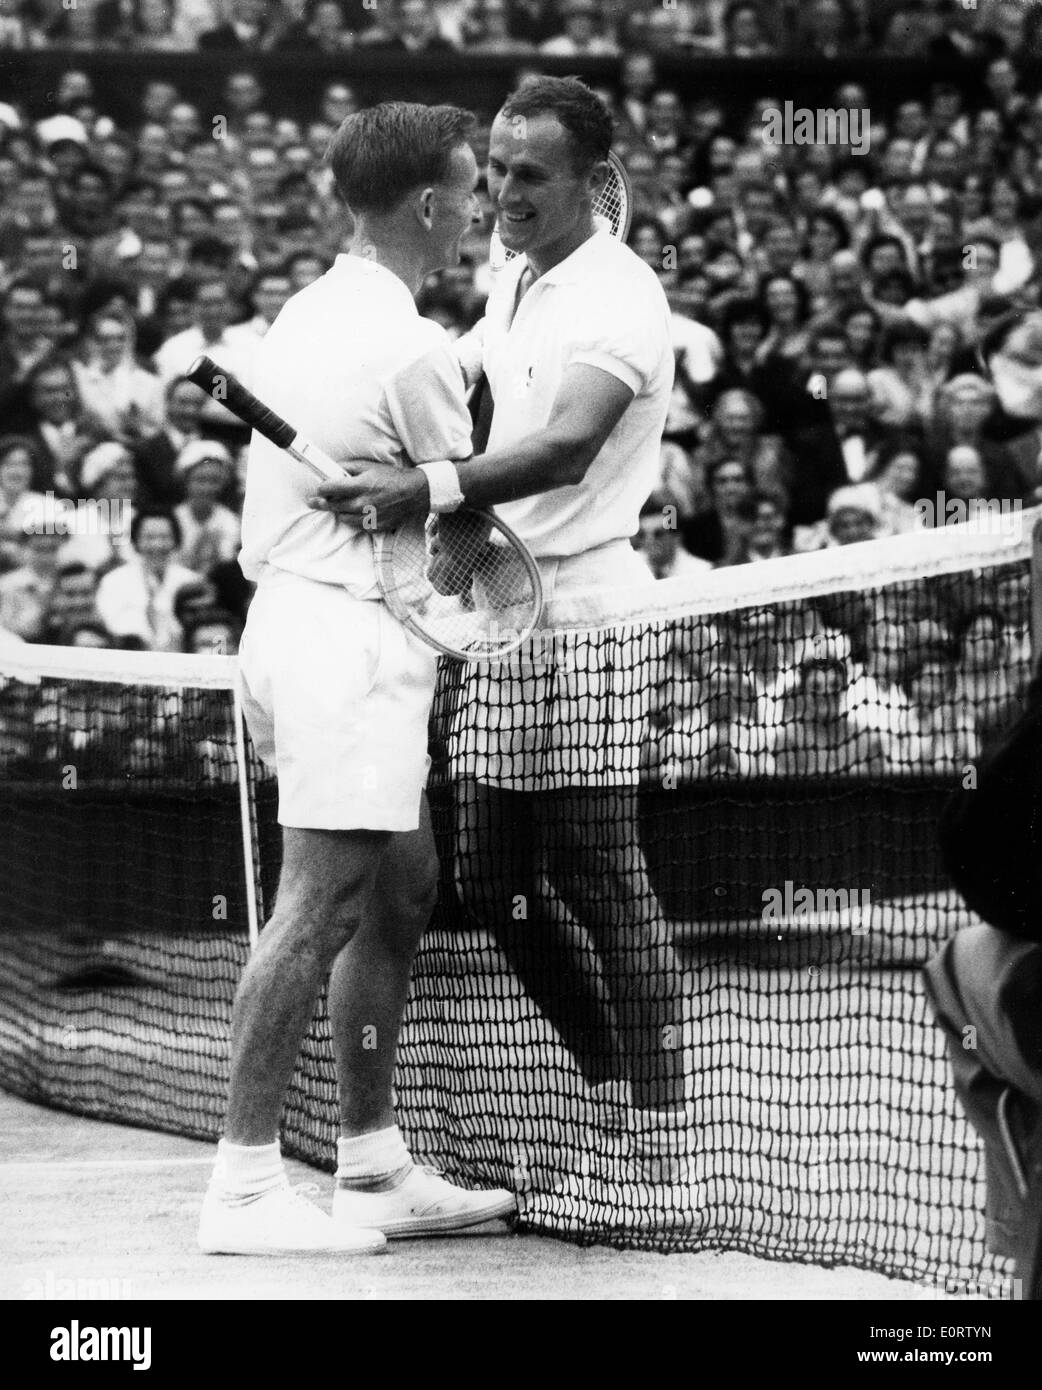 Tennis pro Neale Fraser greets opponent at match Stock